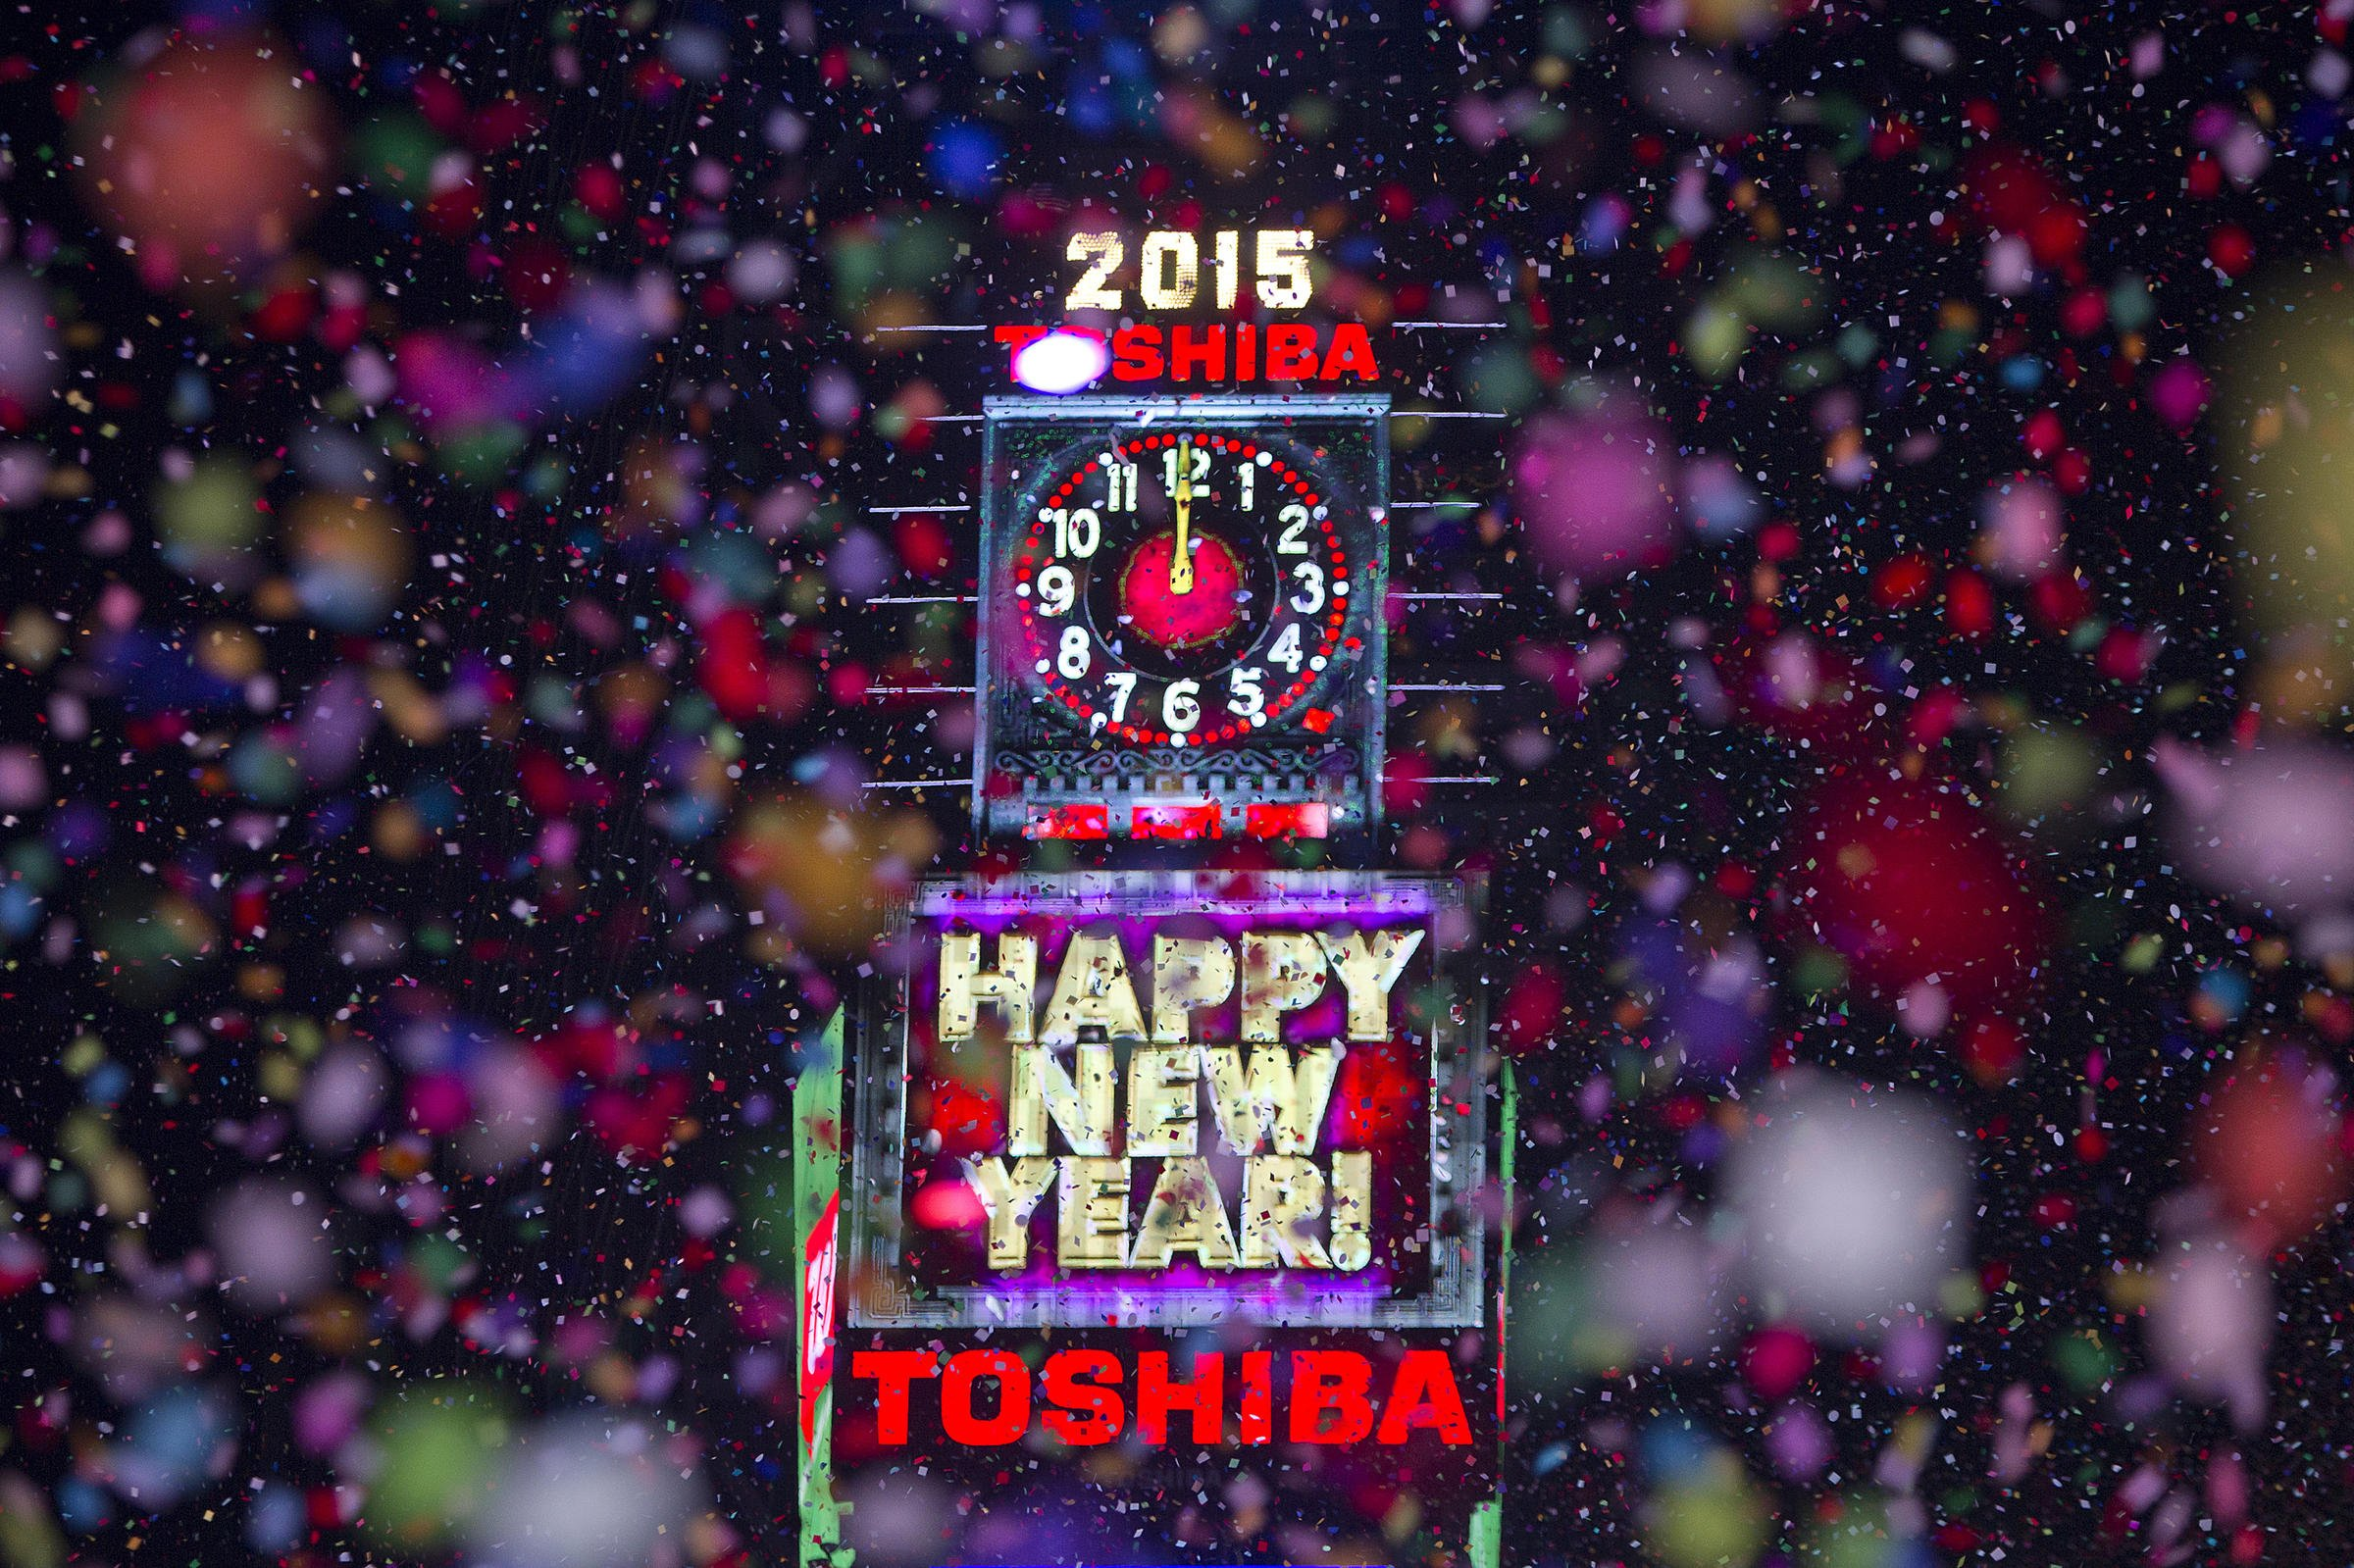 Confetti flies around the ball and countdown clock in Times Square on New Year's Eve in New York January 1, 2015. REUTERS/Carlo Allegri (UNITED STATES - Tags: SOCIETY ANNIVERSARY) - RTR4JSGR